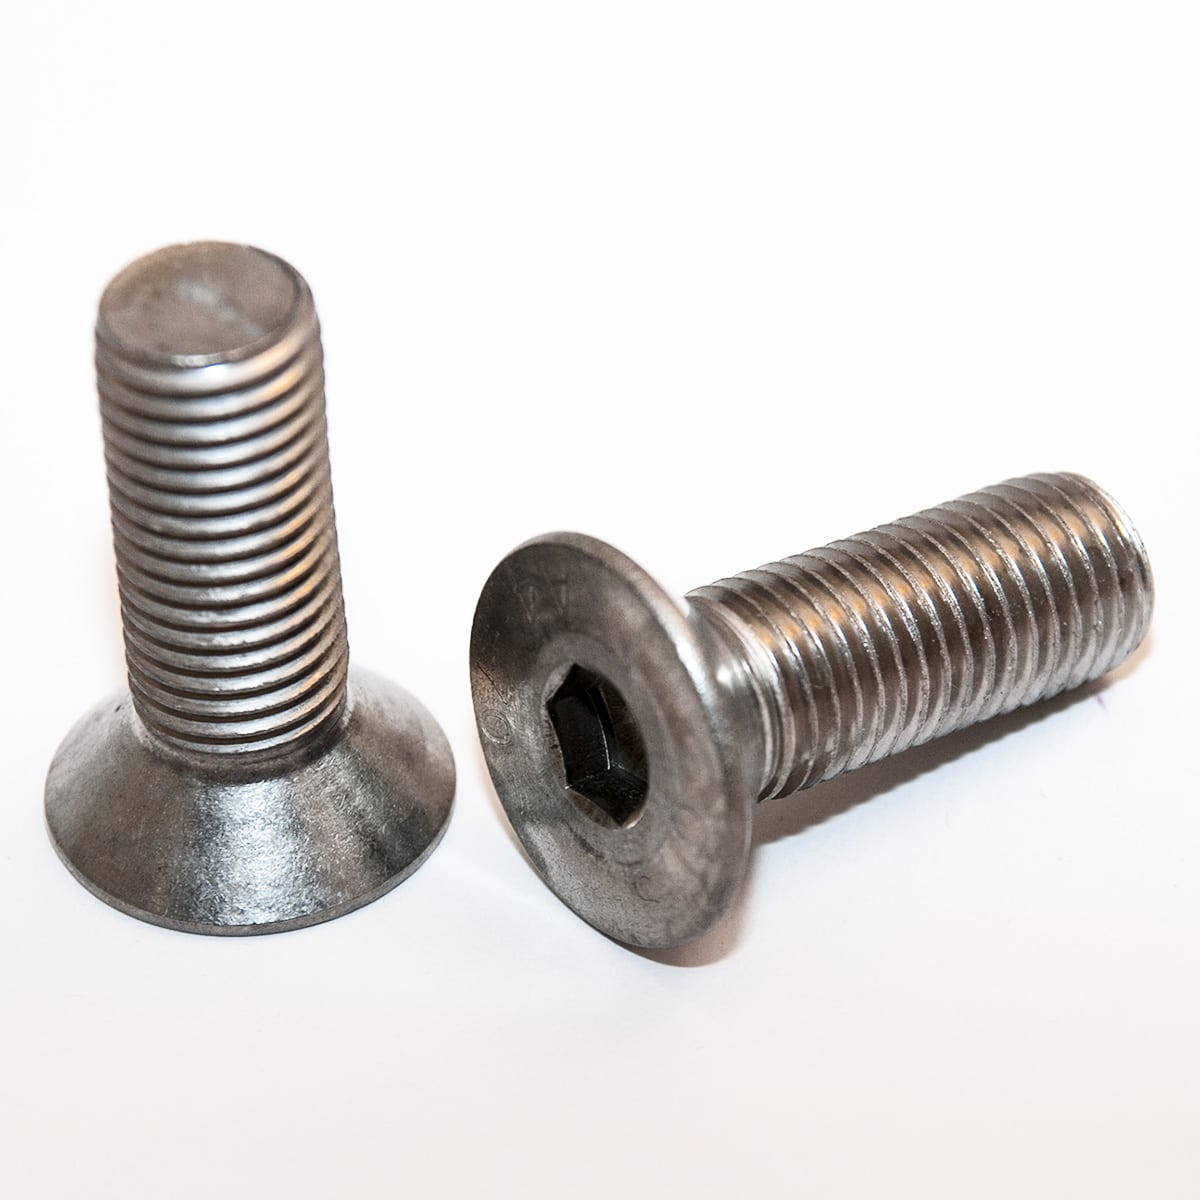 Socket hexagonal flat countersunk head screws